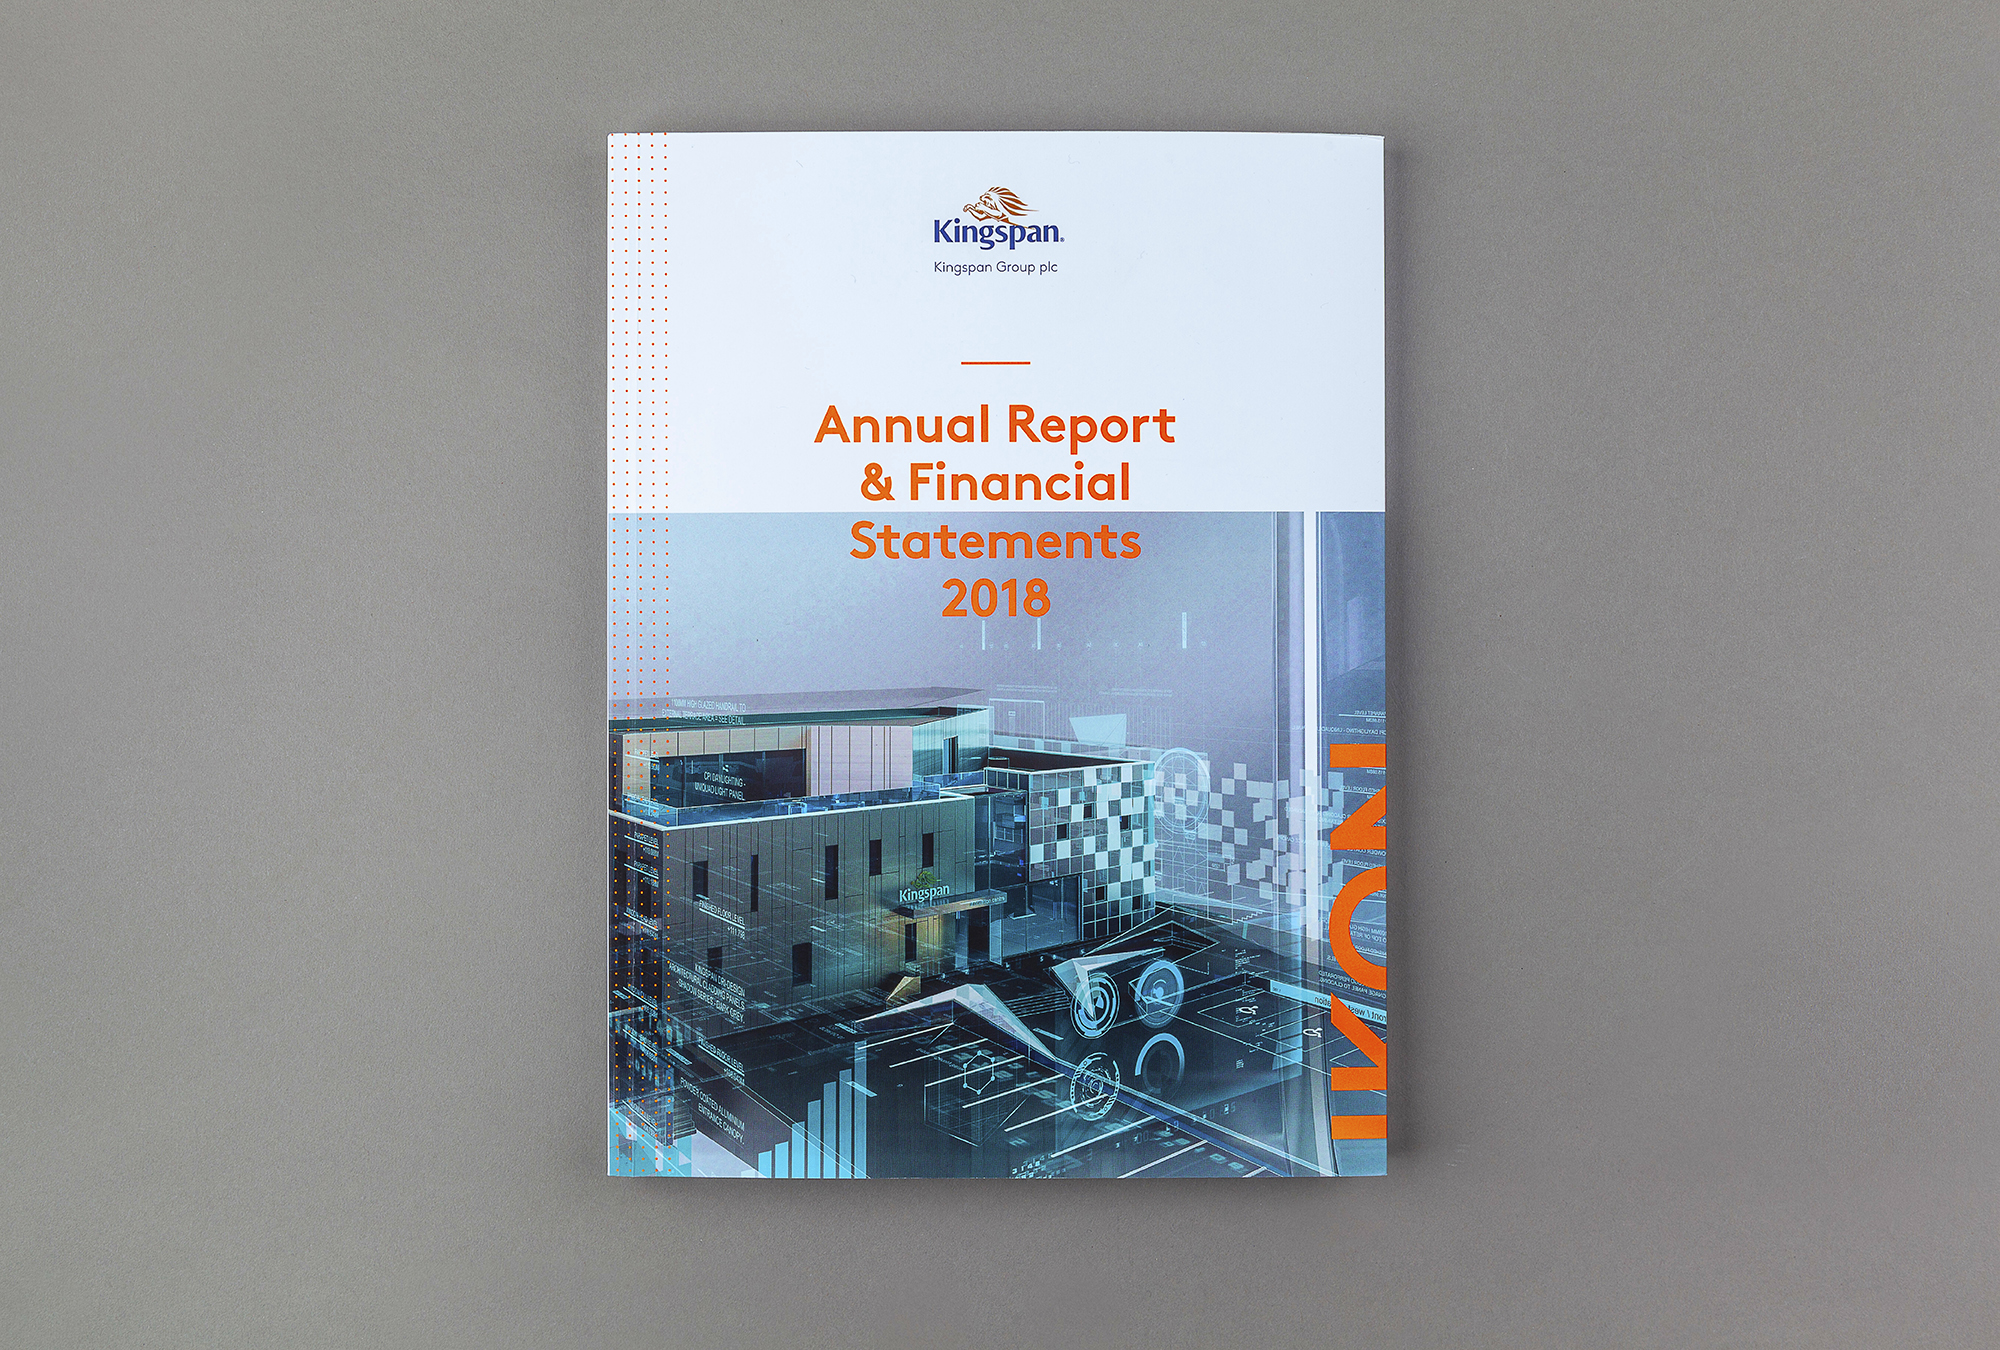 Cover image: Kingspan Annual Report 2018